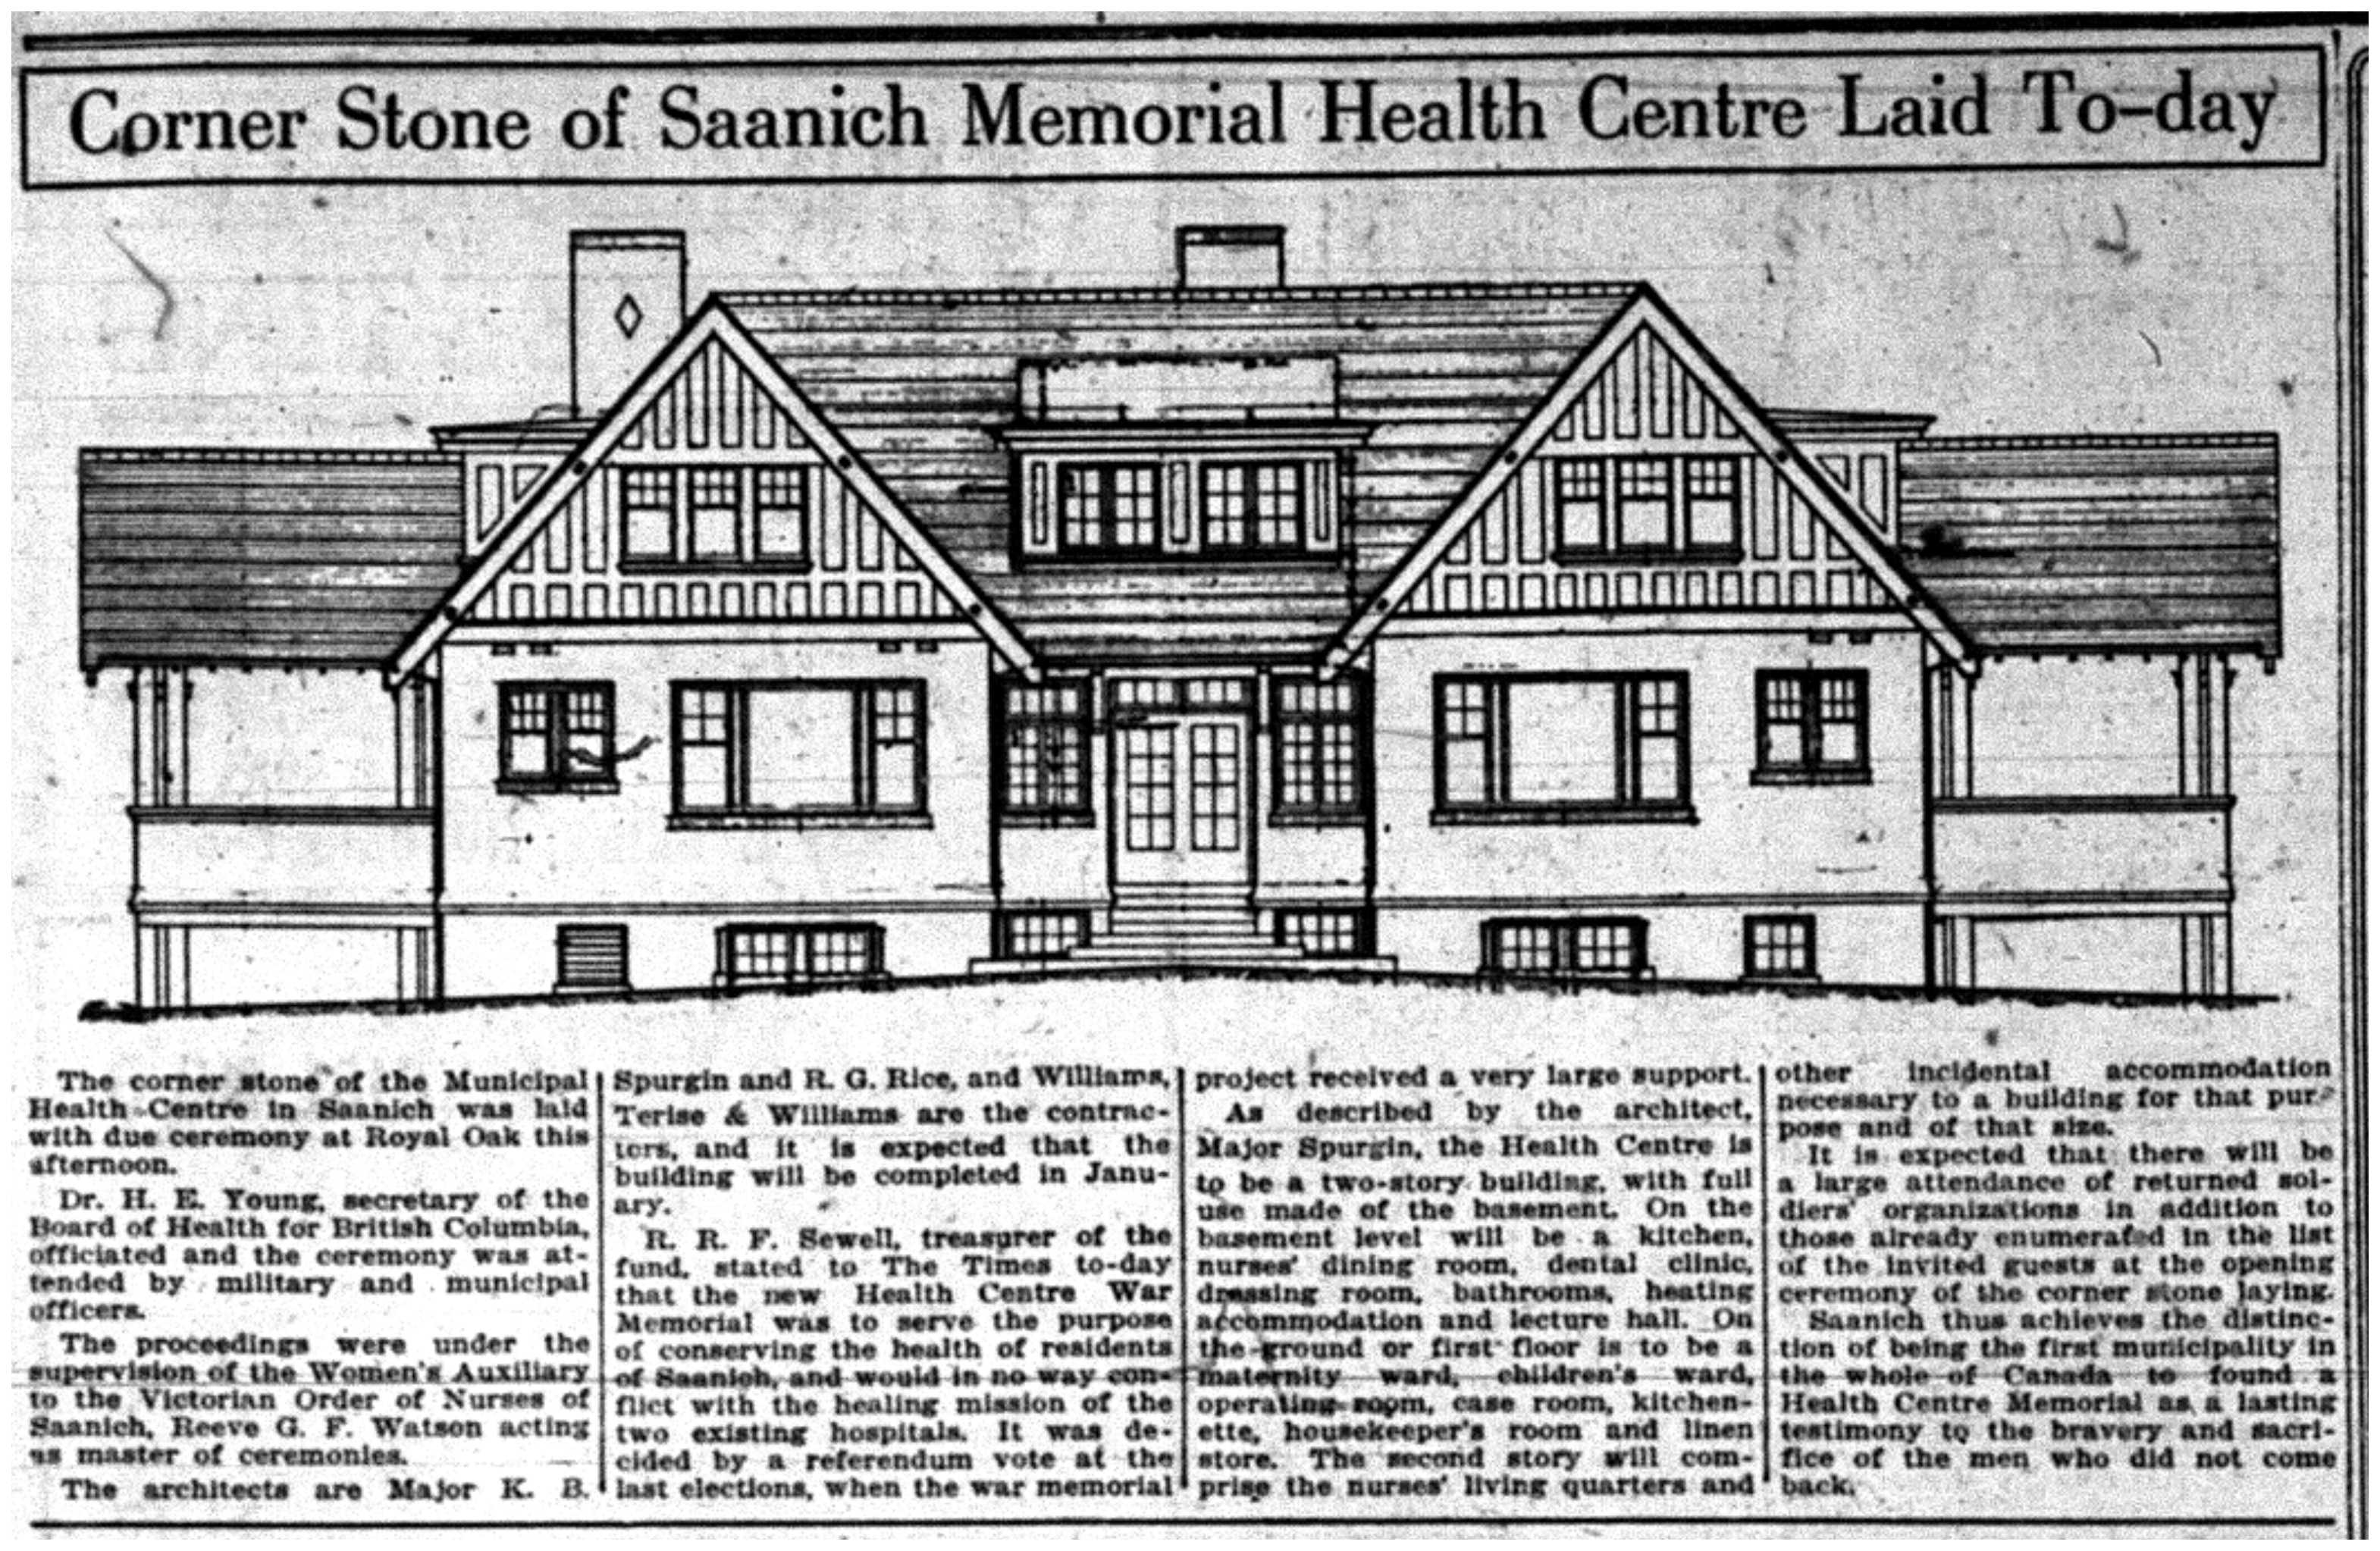 """Cornerstone of Saanich Memorial Health Centre Laid To-day"""